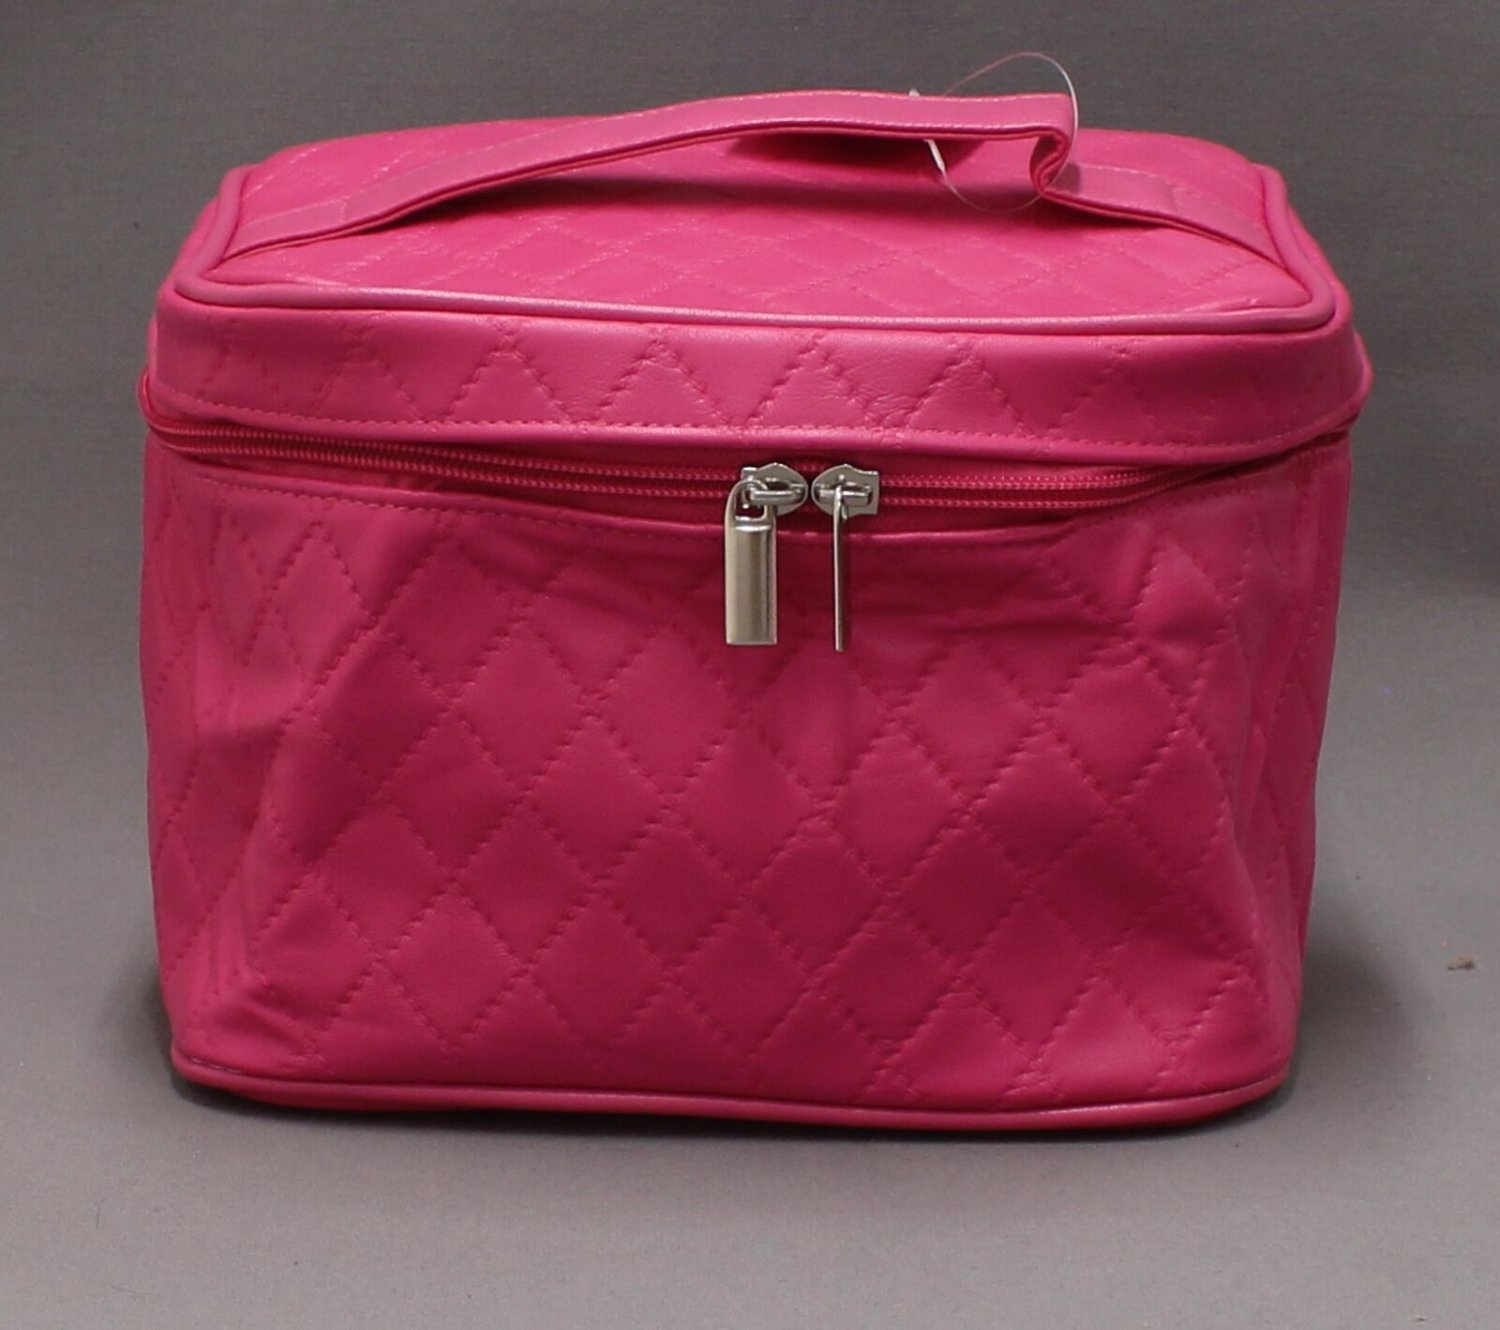 Oxford Street Quilted Train Case Bag Travel Cosmetics Makeup Jewelry Pink